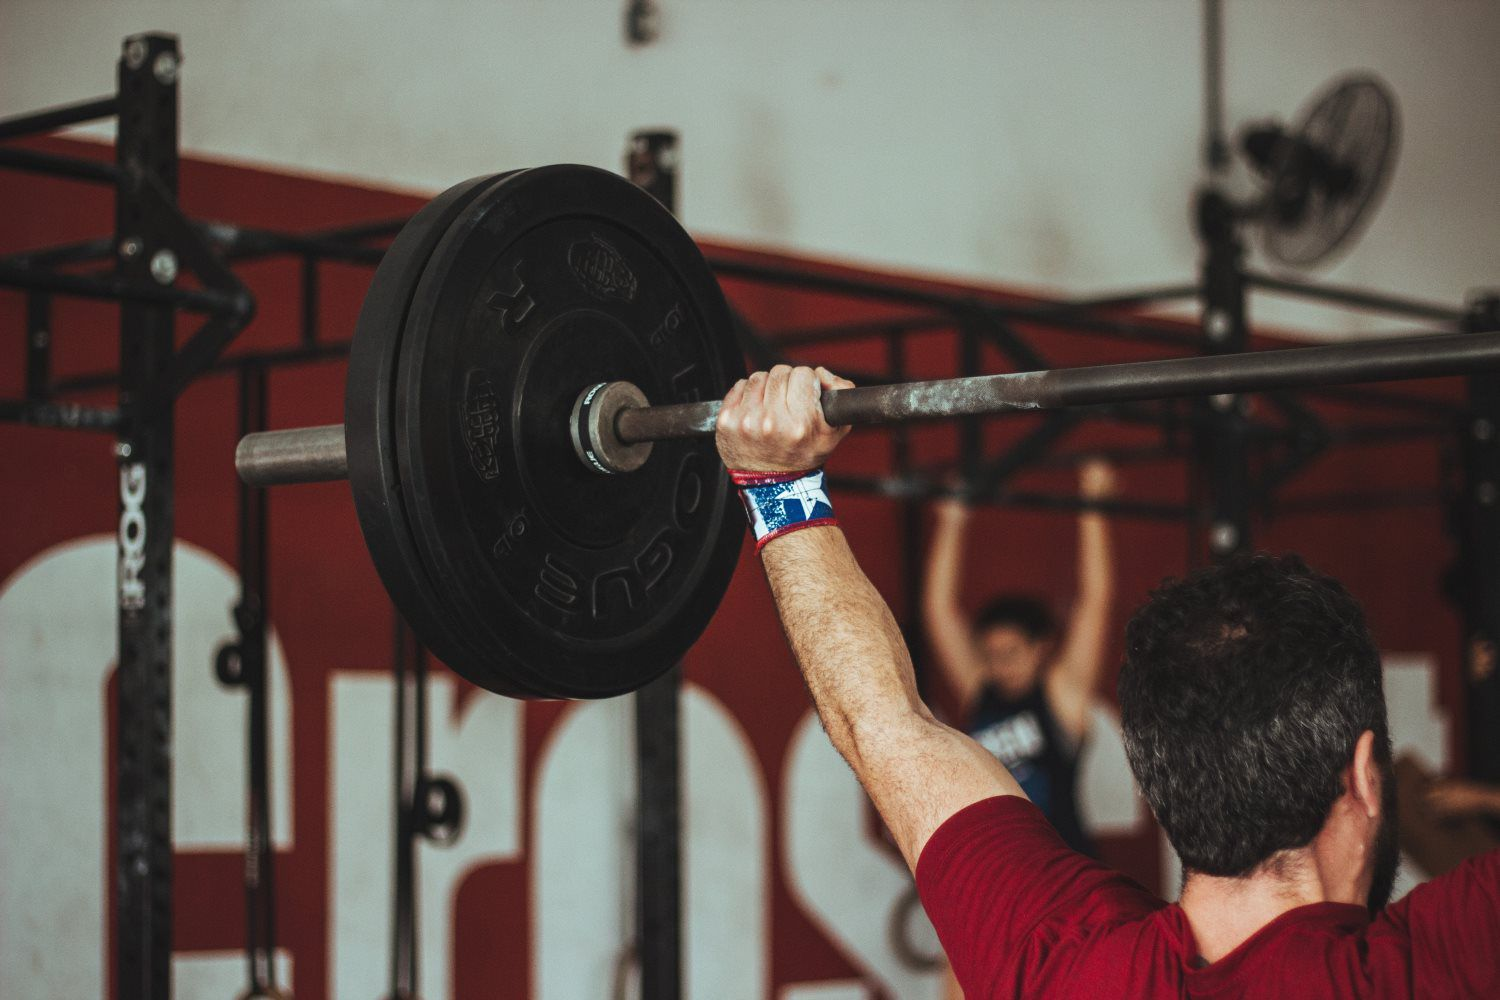 Driving Force Sports Performance | Athlete, Boxing, & Fitness Center